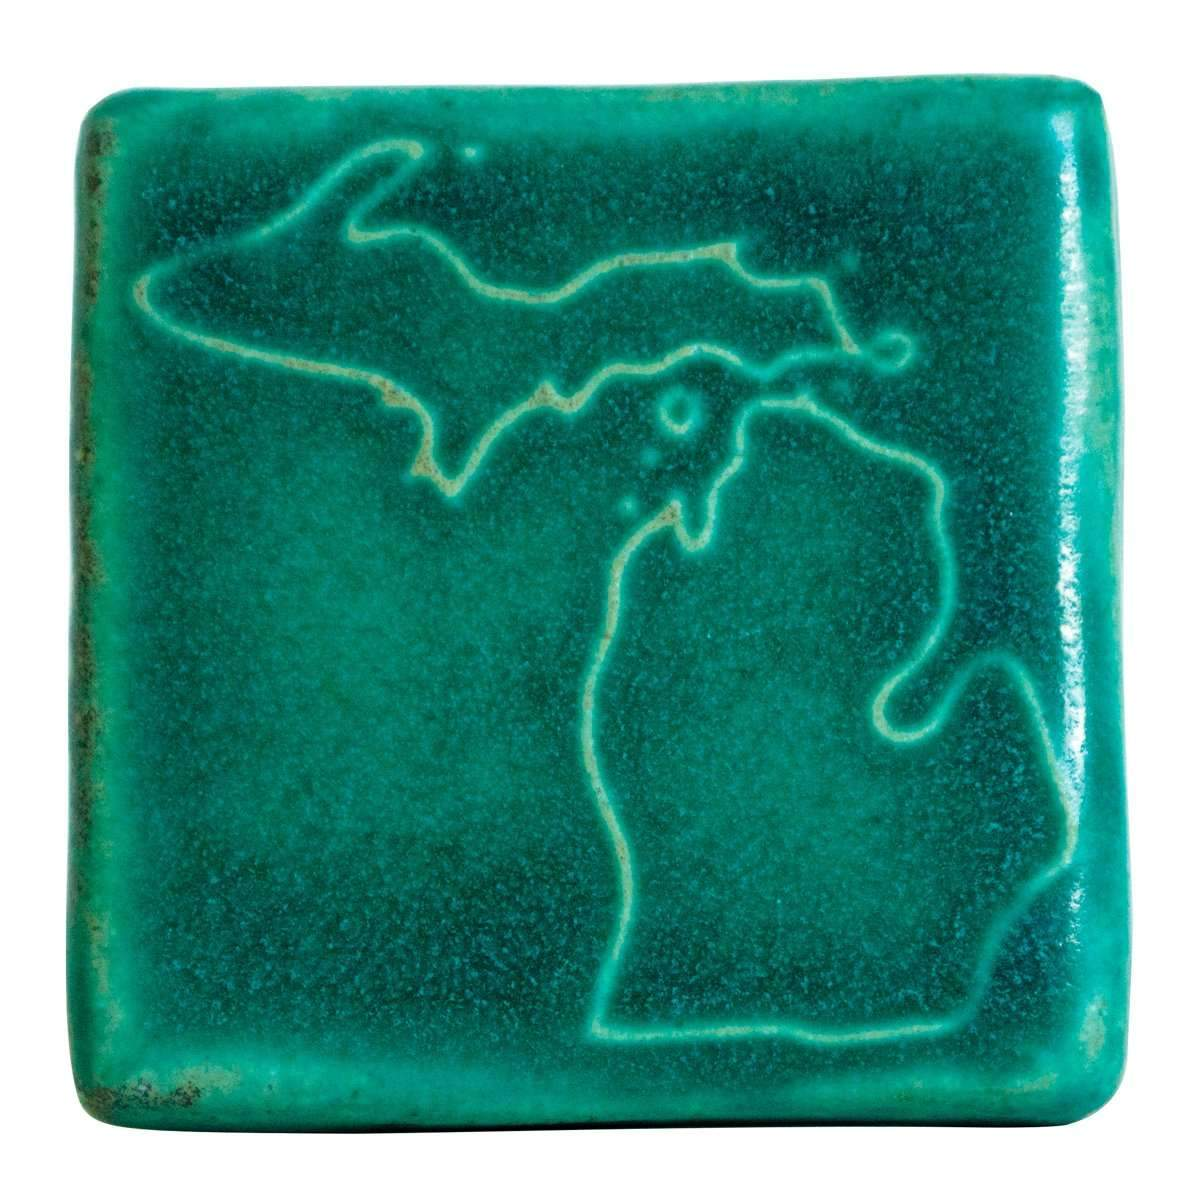 3x3 Michigan Pewabic Tile - Pewabic Blue